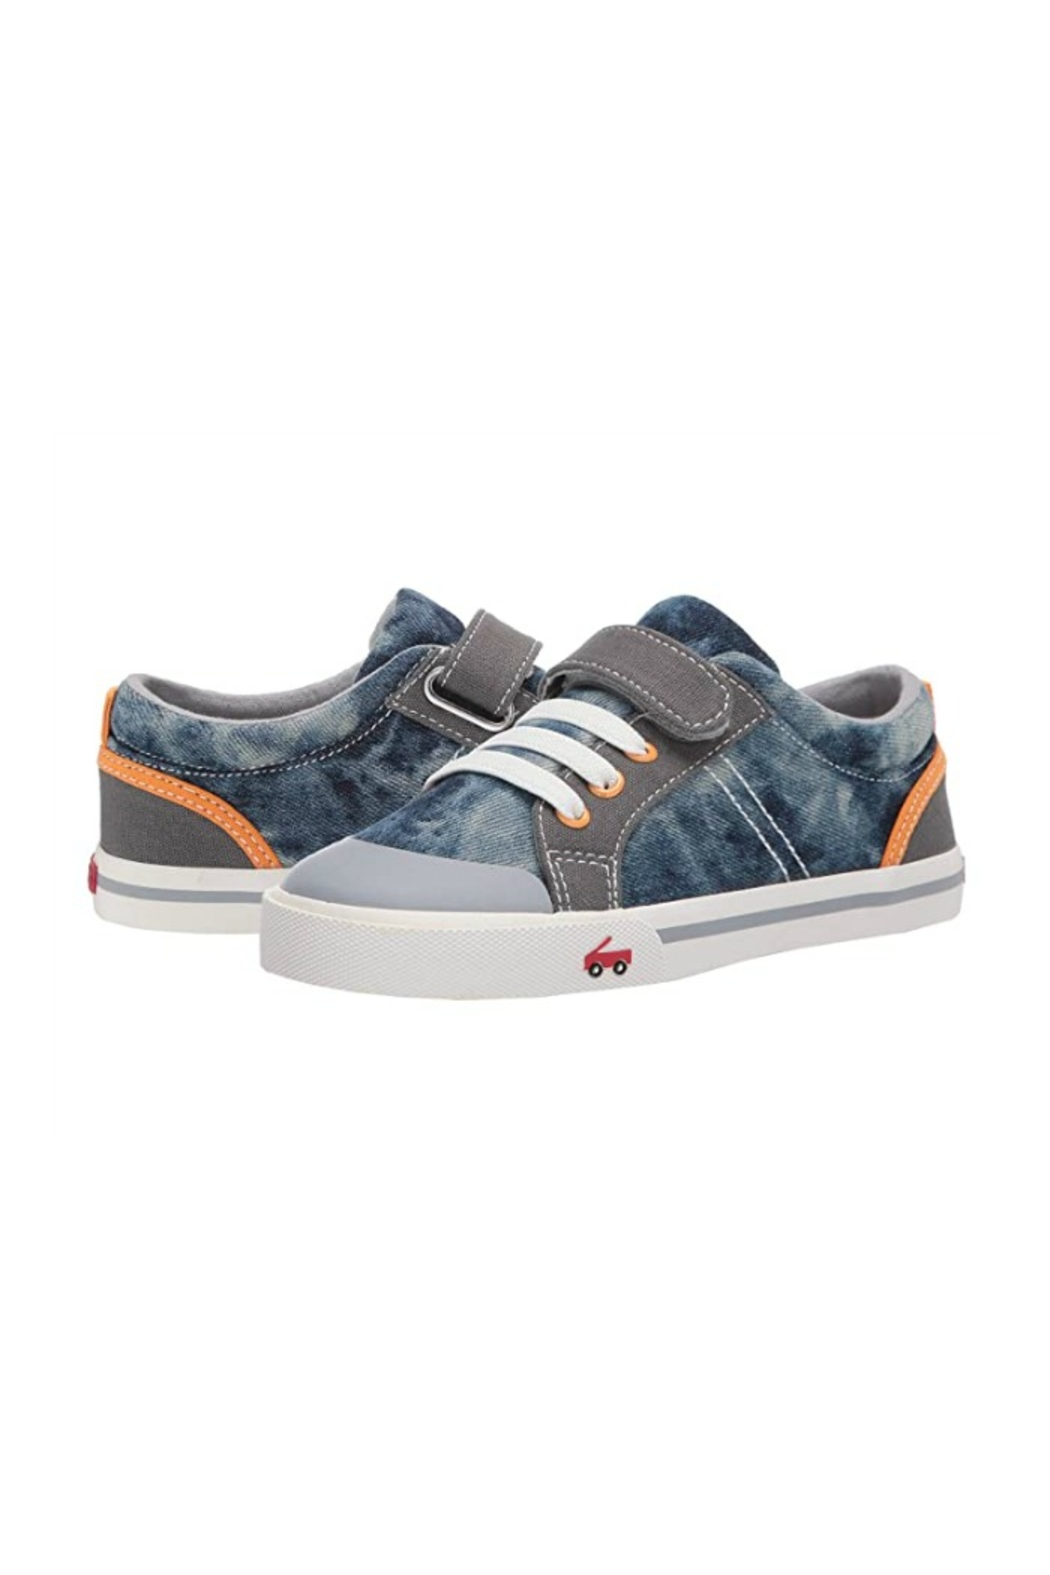 See Kai Run  Tanner in Washed Denim - Side Cropped Image